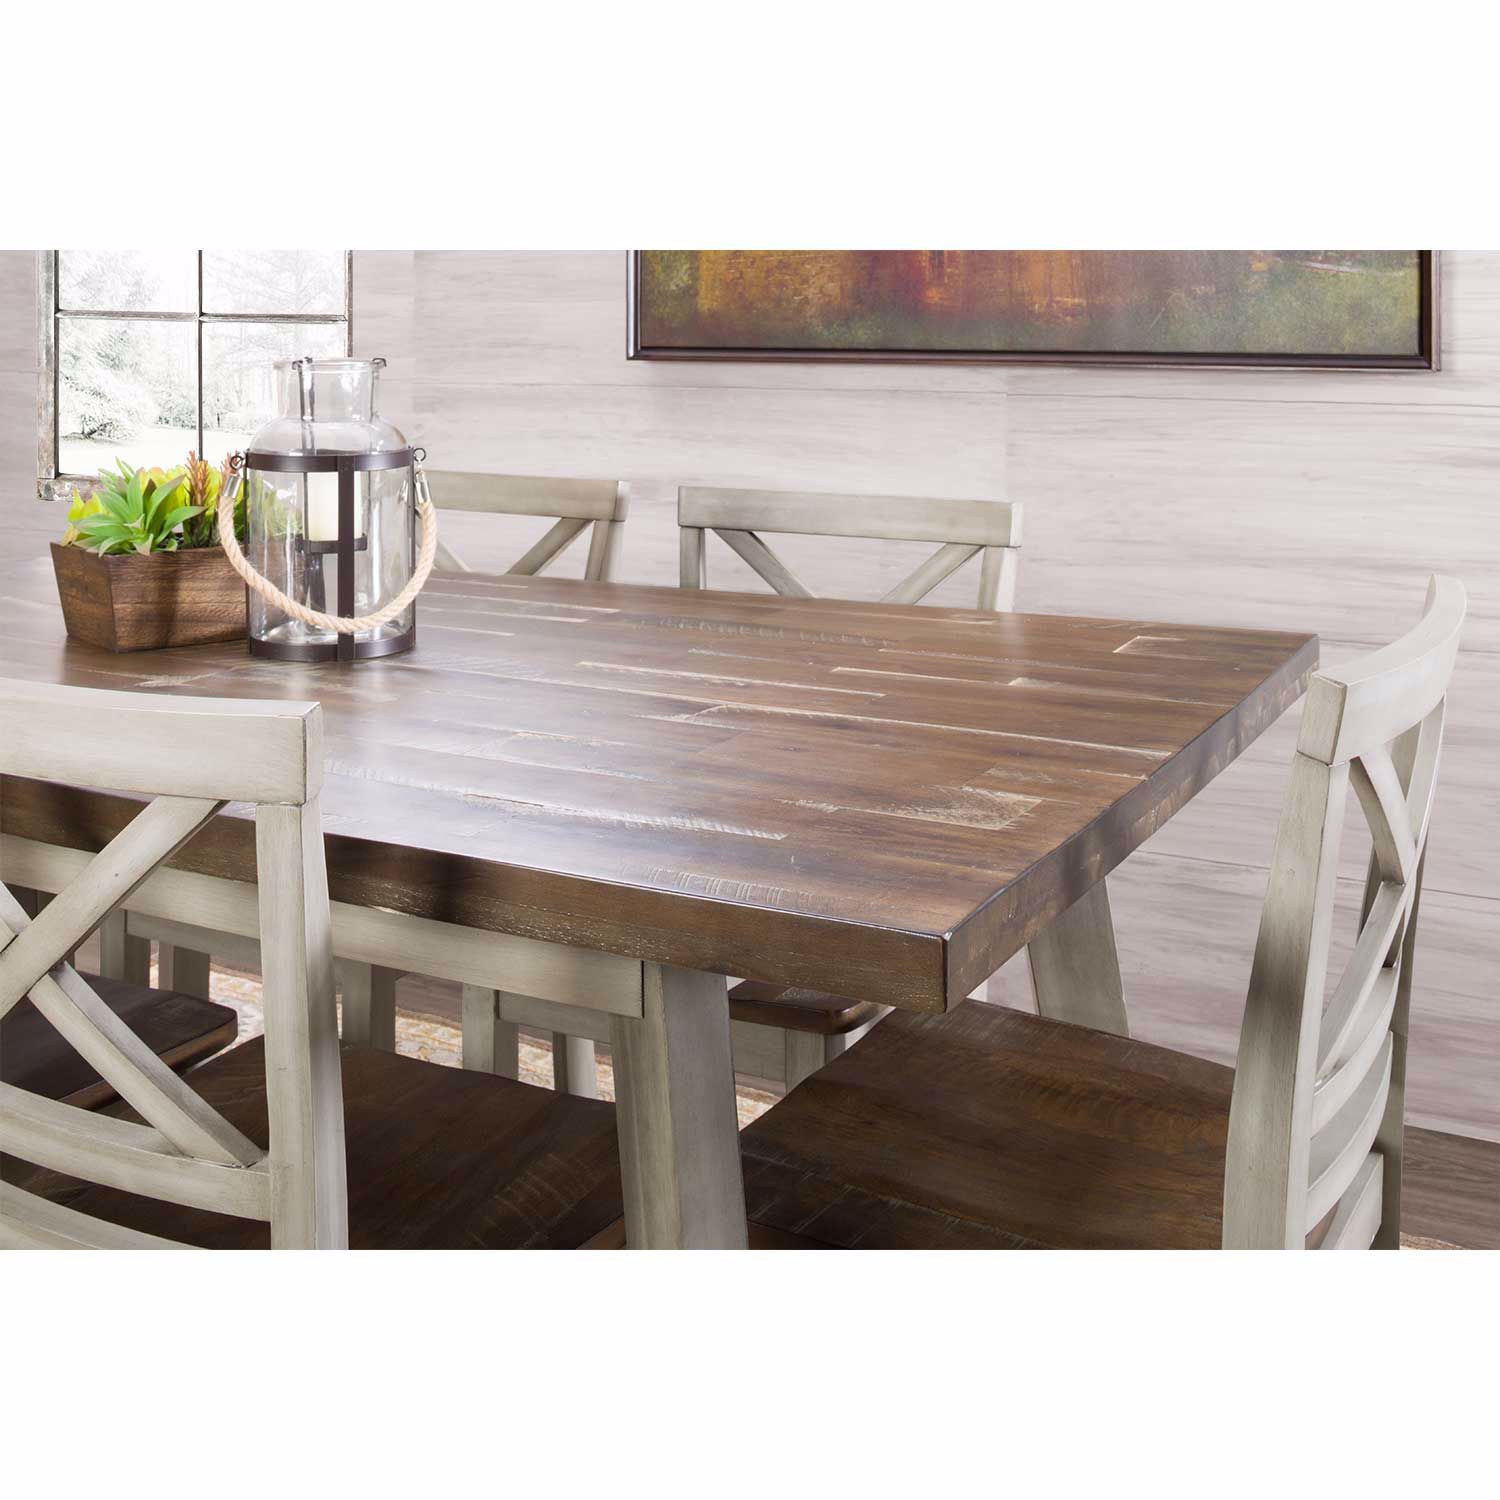 Picture of Fairhaven Counter Dining Table